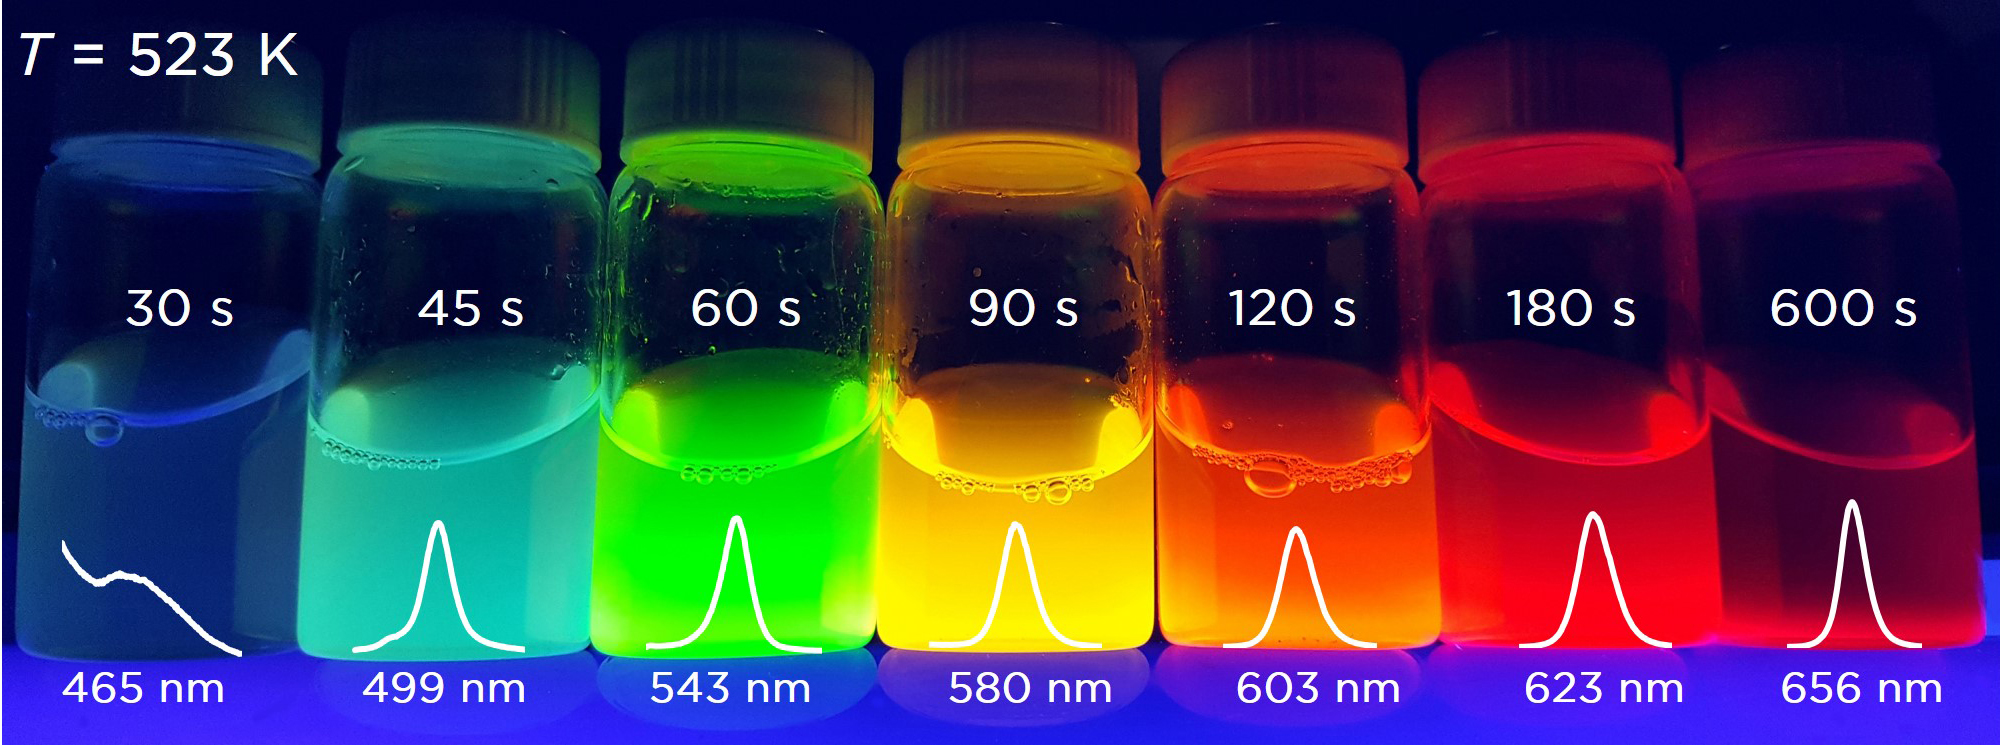 Quantum nanodots experimental results showing the colour of the dots versus time of reaction.